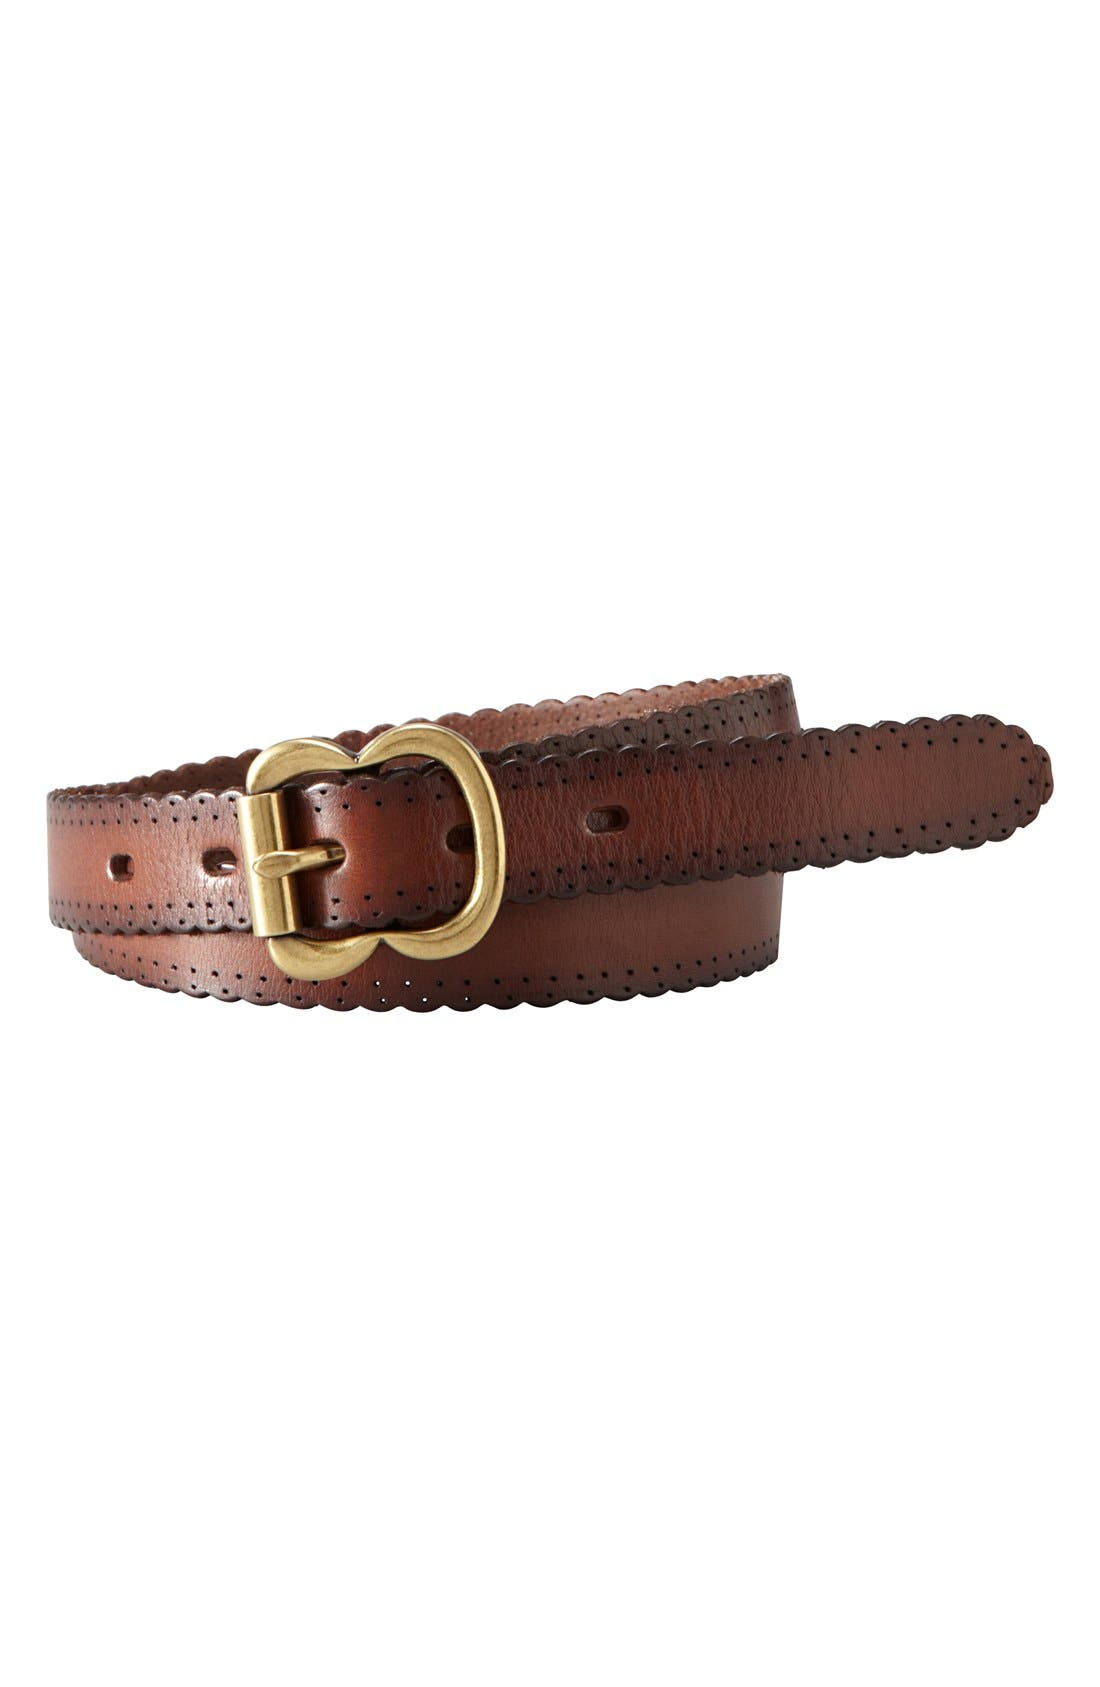 Alternate Image 1 Selected - Fossil Scallop Edge Leather Belt